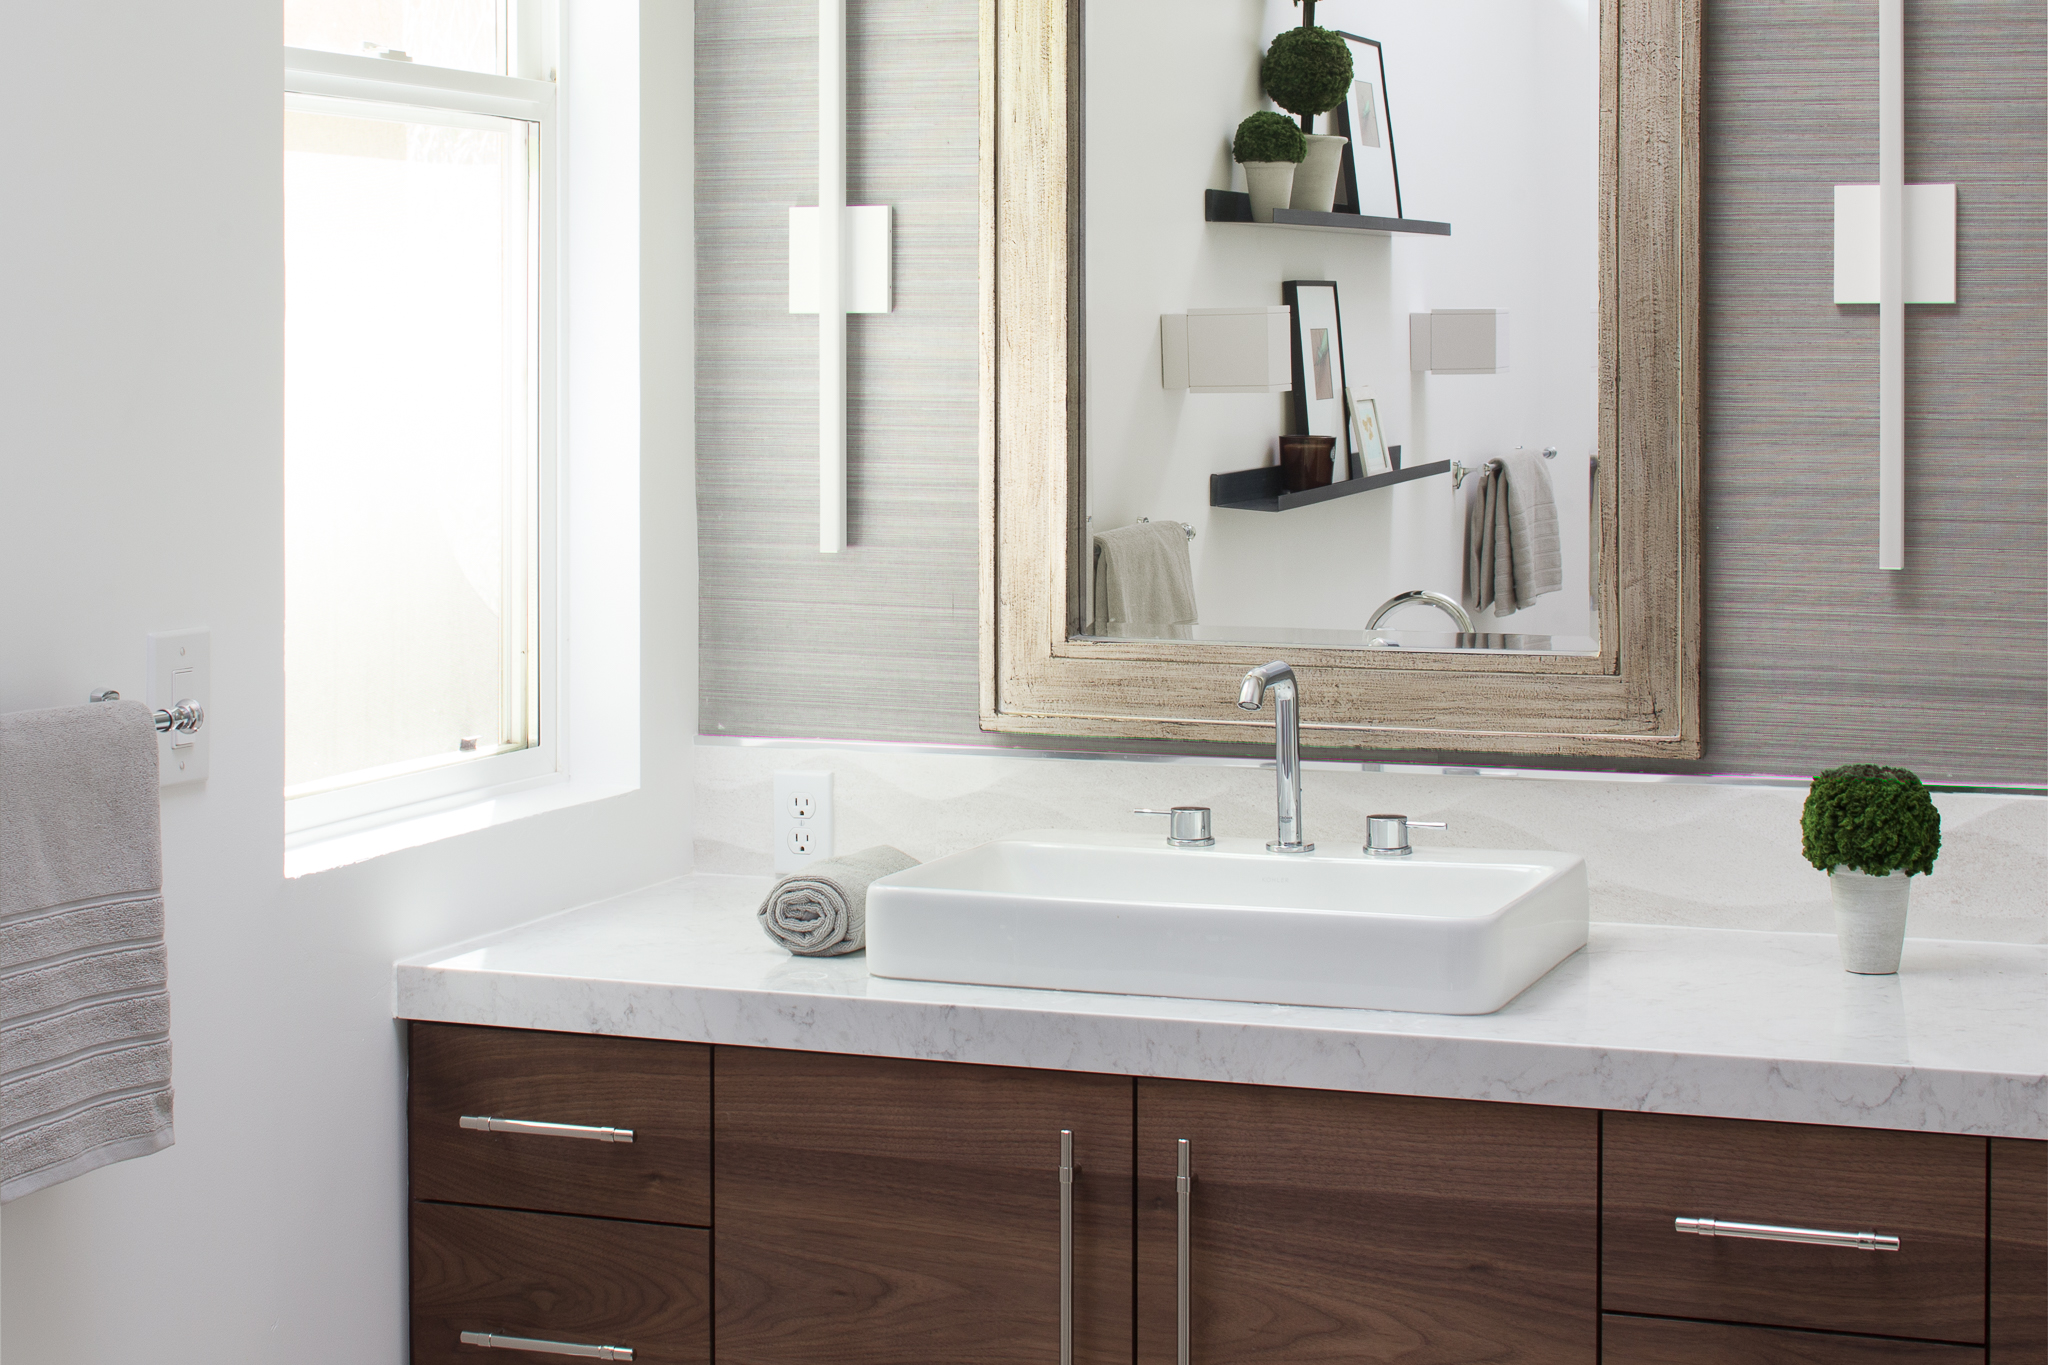 Tight Sink and Vanity.jpg